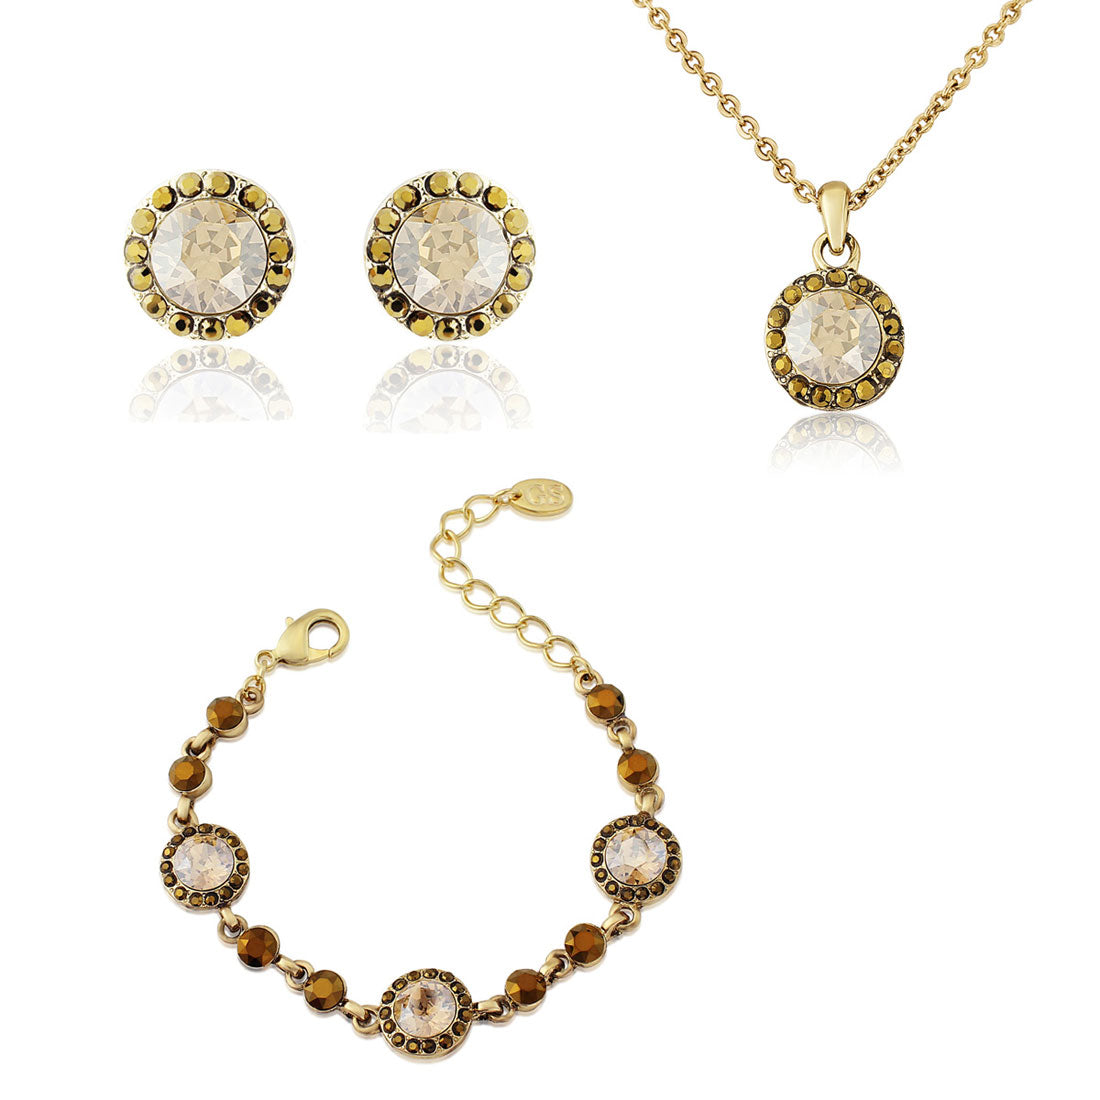 Luxe Treasure Jewellery Set featuring pendant, earrings and bracelet